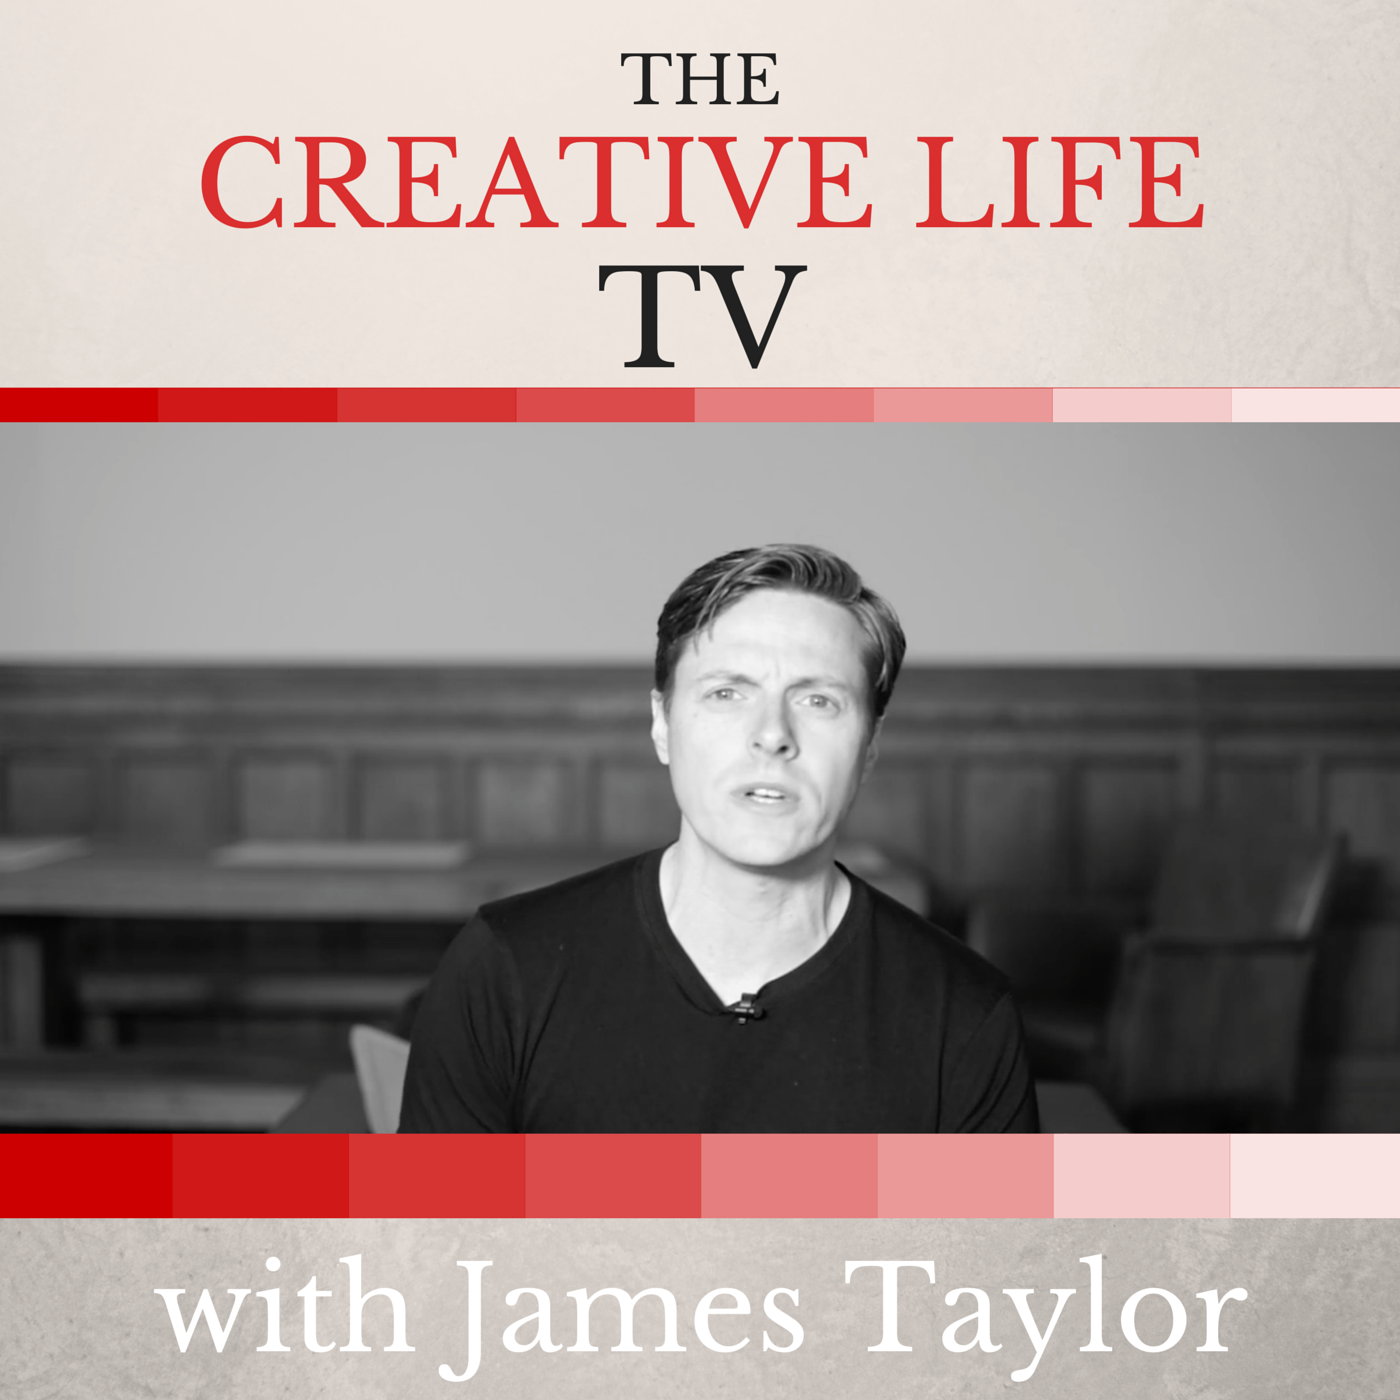 The Creative Life TV: Creativity, Innovation and Inspiring Ideas | James Taylor